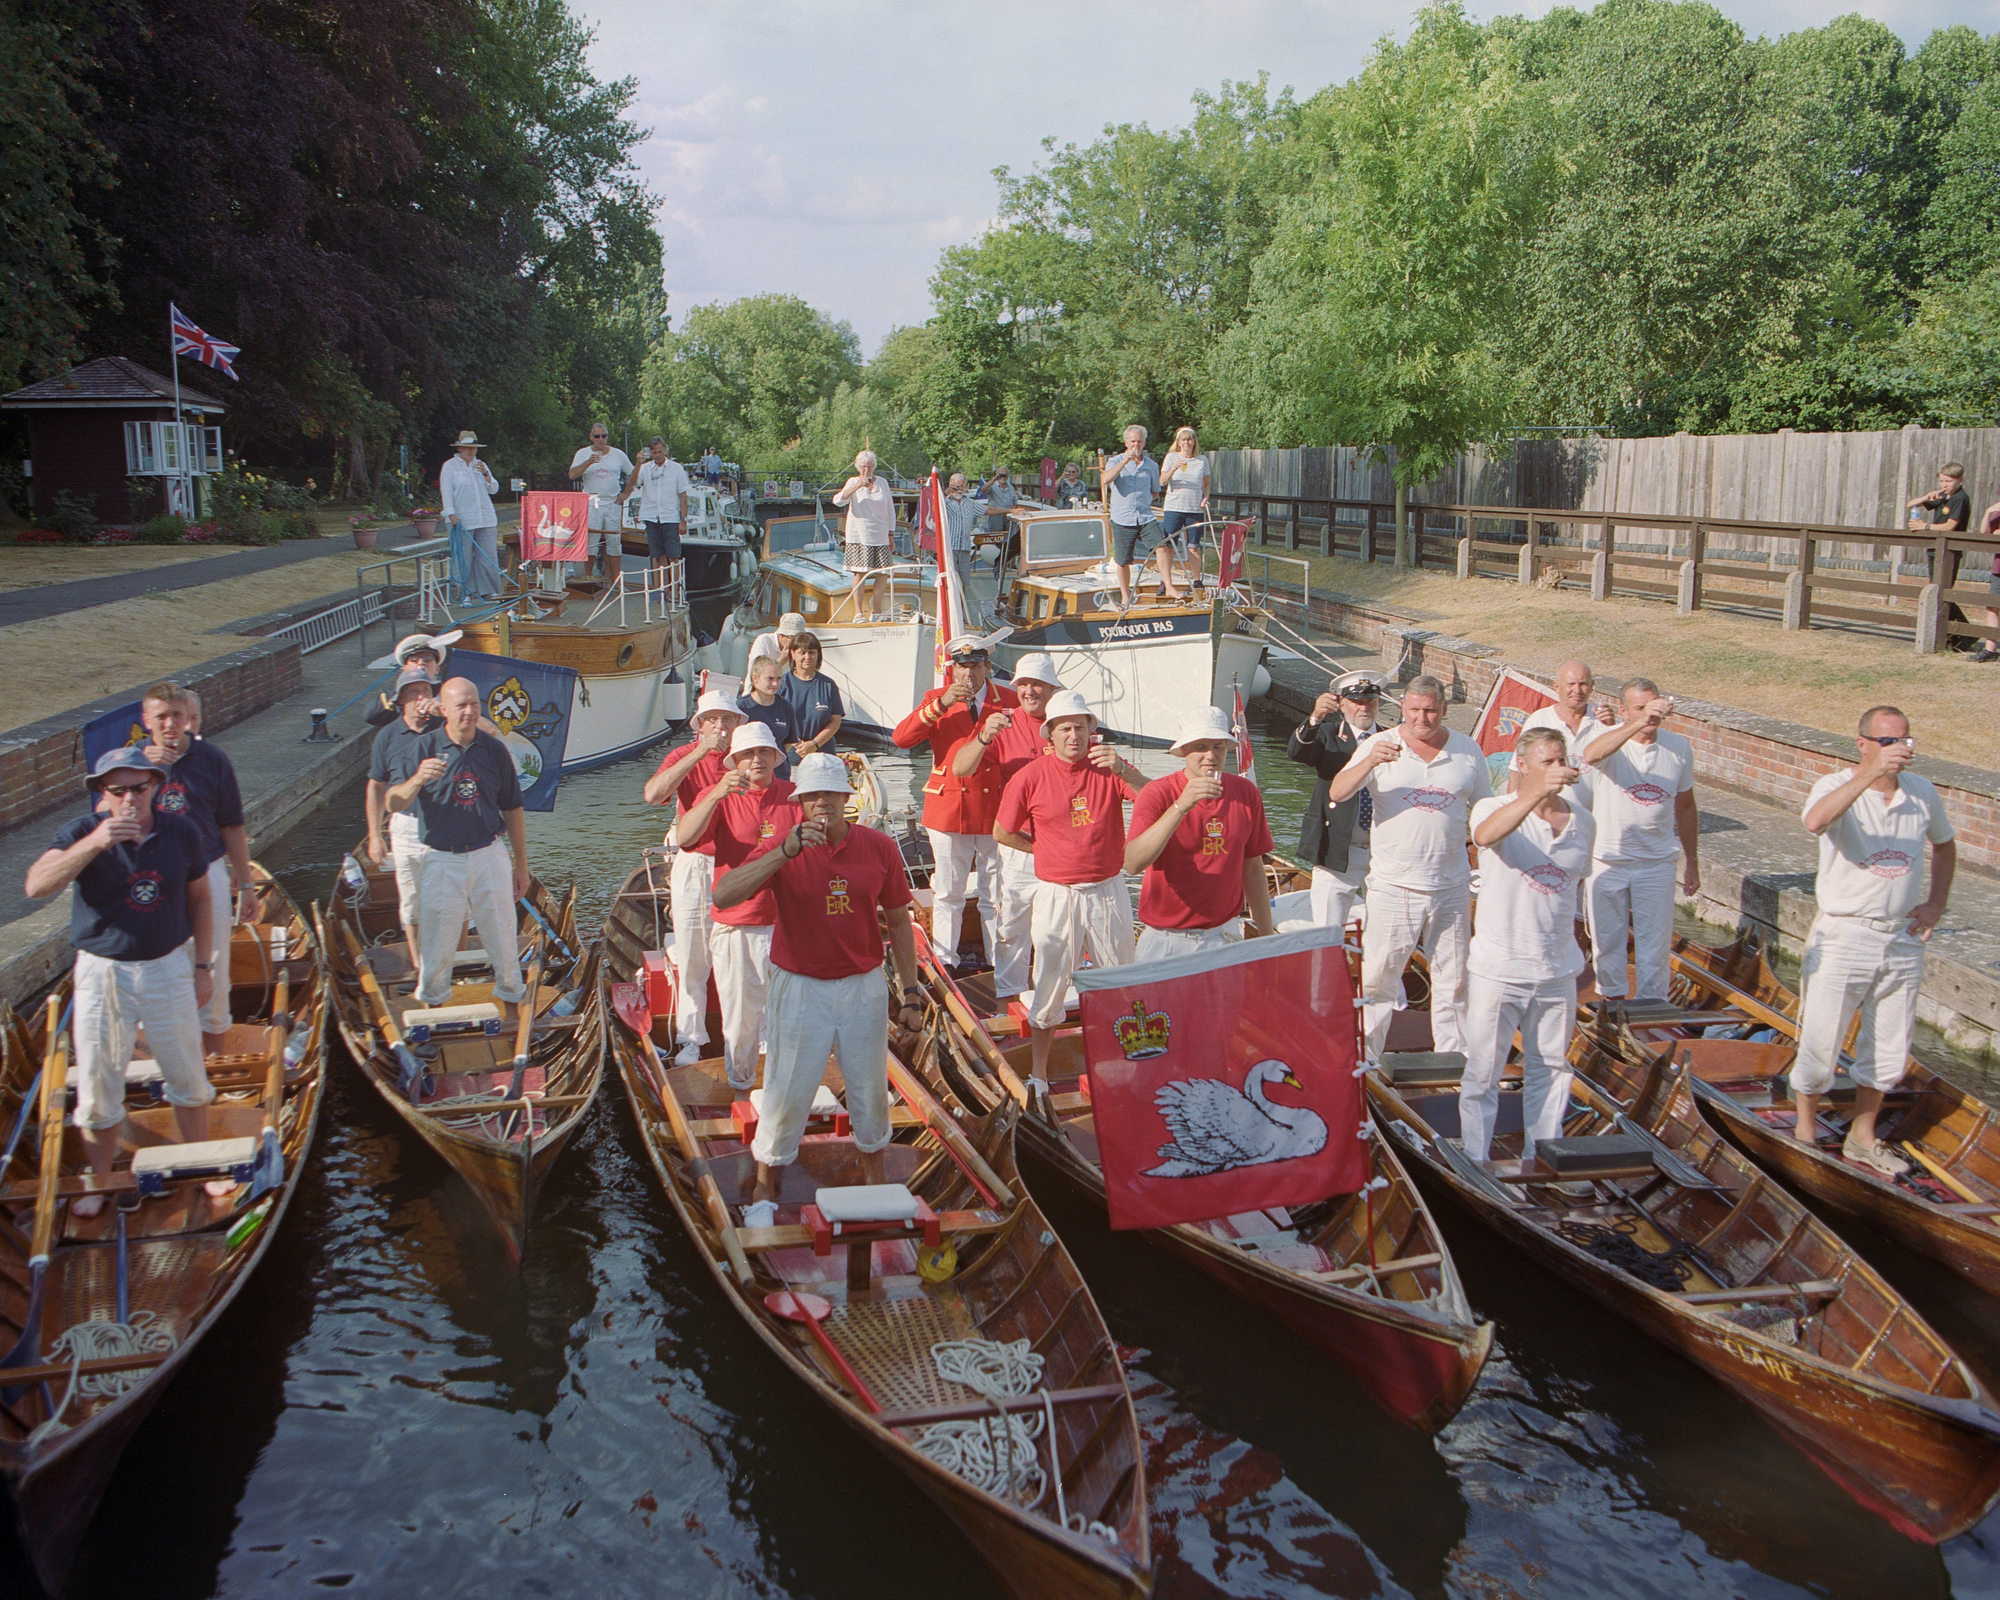 Crews raise a toast to the queen on the first day of Swan Upping in England on July 16, 2018. MUST CREDIT: Photo for The Washington Post by Tori Ferenc